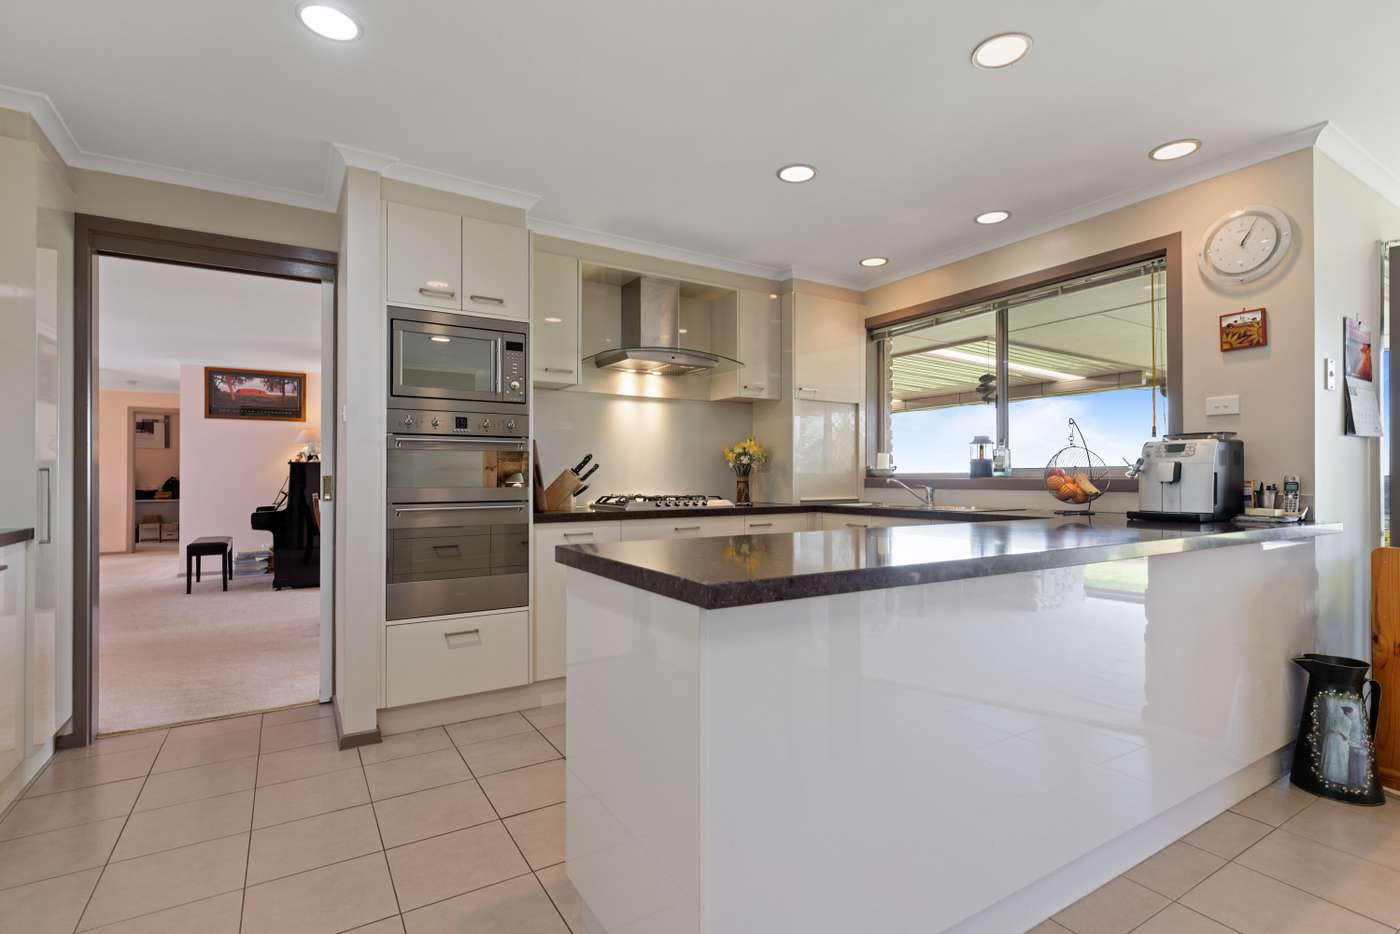 Sixth view of Homely house listing, 7 Ramsay Crescent, Darley VIC 3340